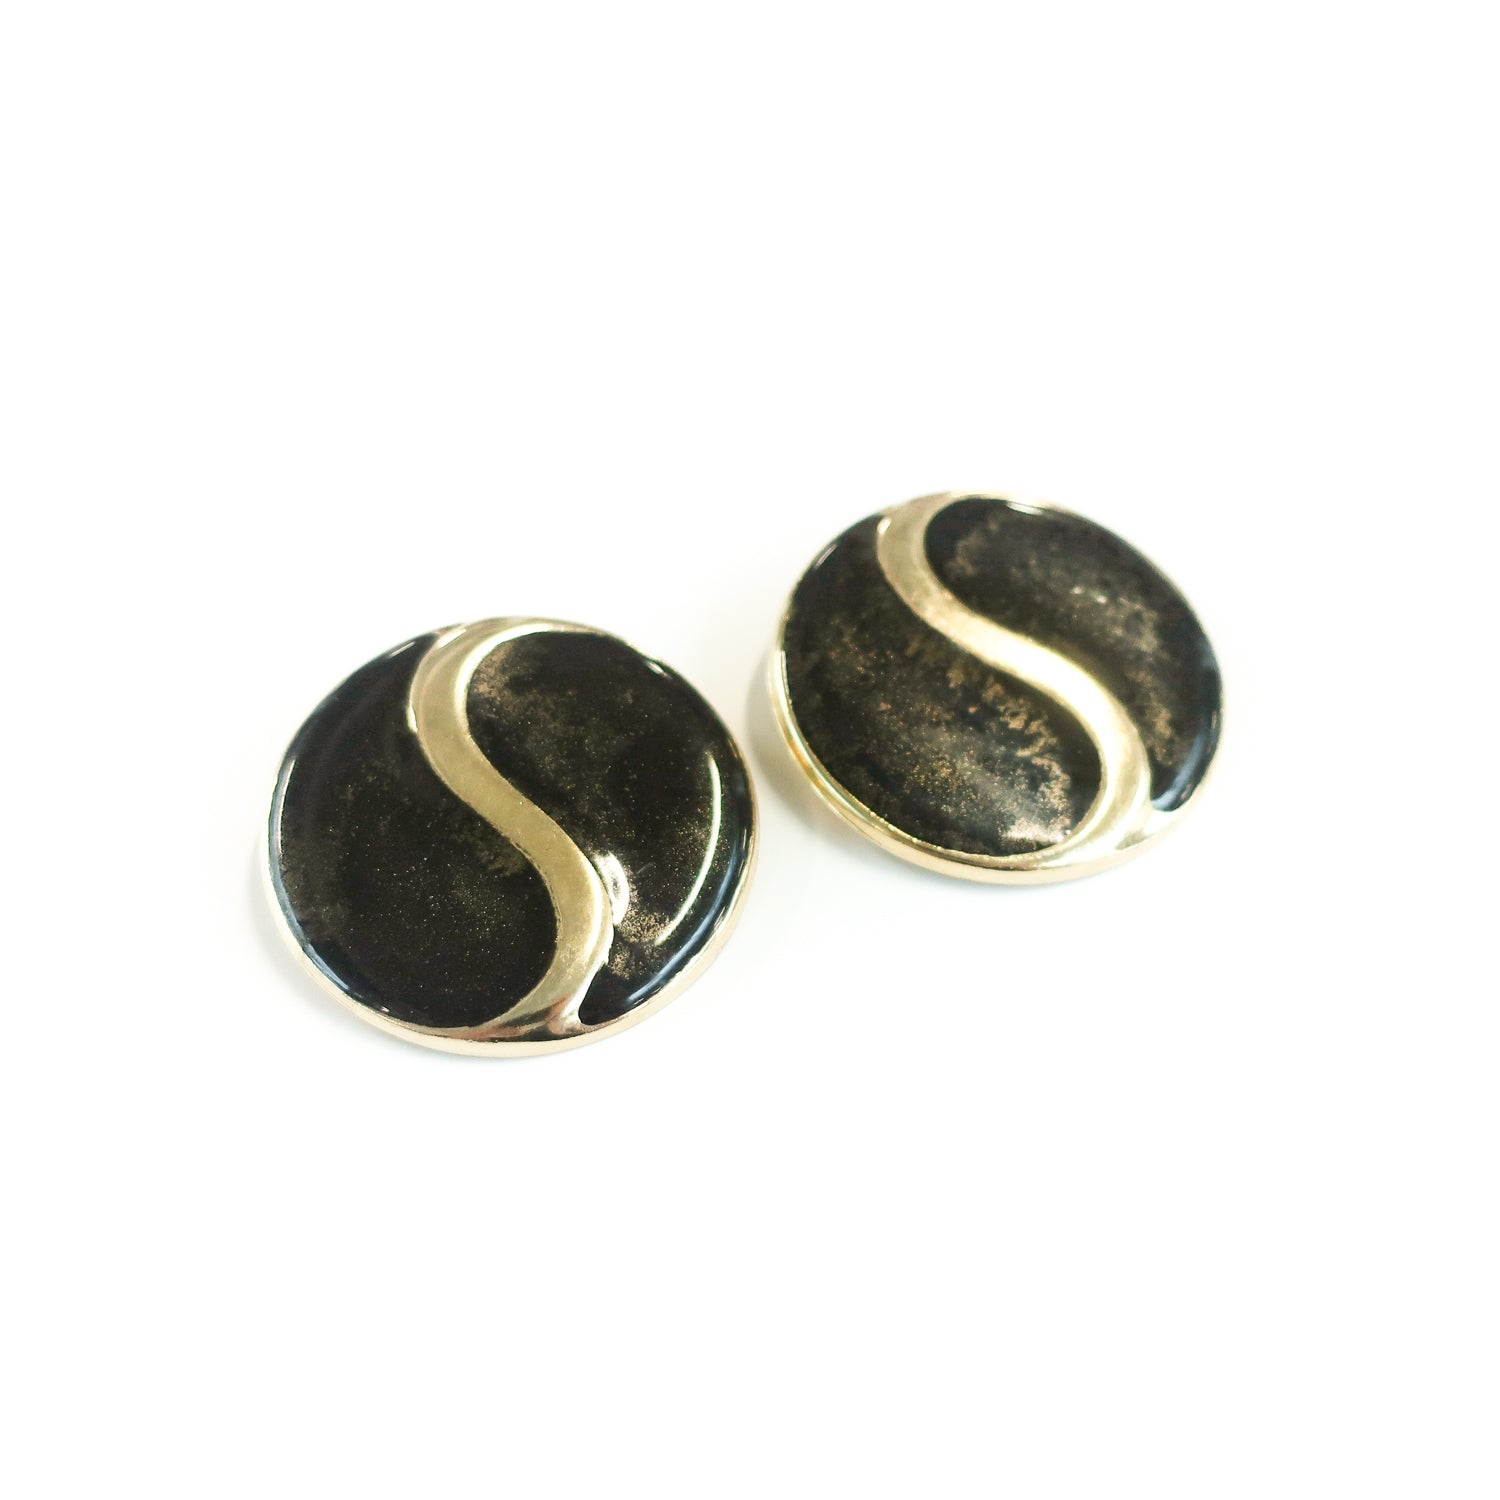 "Second Room Vintage Clothing. Vintage round, black and gold tone enamel painted earrings with yin yang design. Earrings are 1.75"" across. Original earring backs have been replaced with new, clear silicone backings. Free North American shipping on all orders."